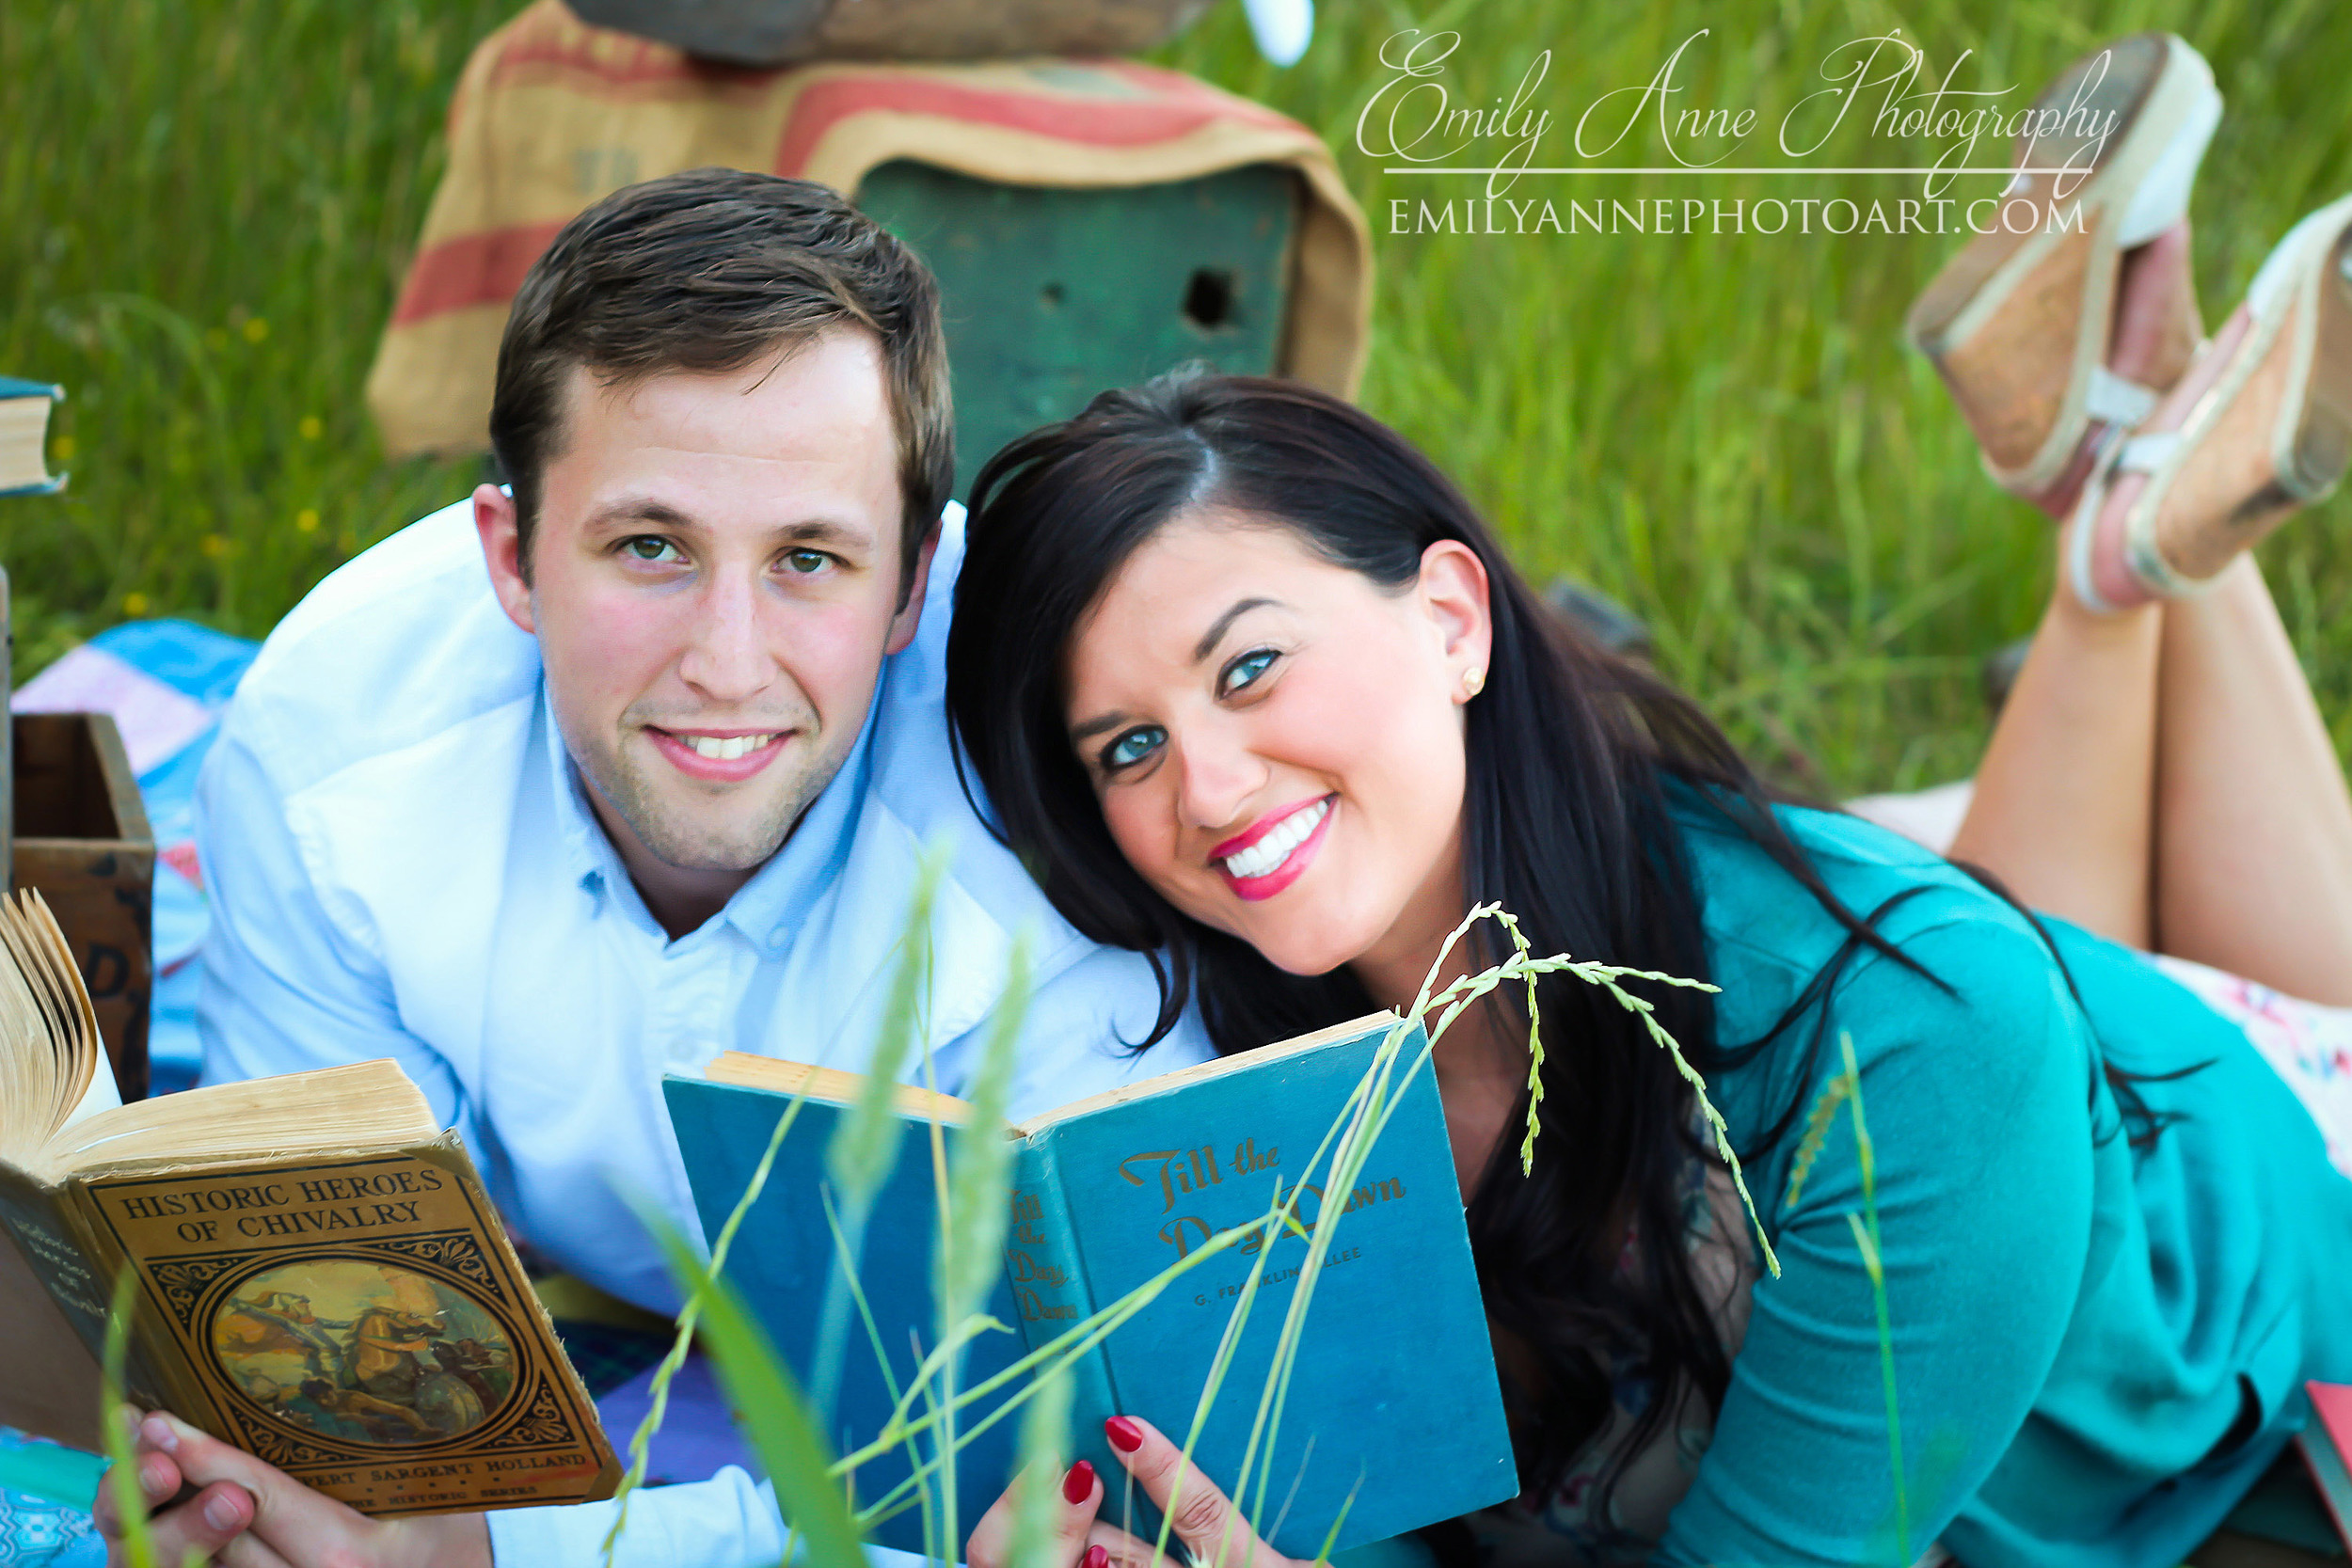 To get this shot, I basically laid in the grass to get an earthy, close & artsylook... and I love how it turned out.